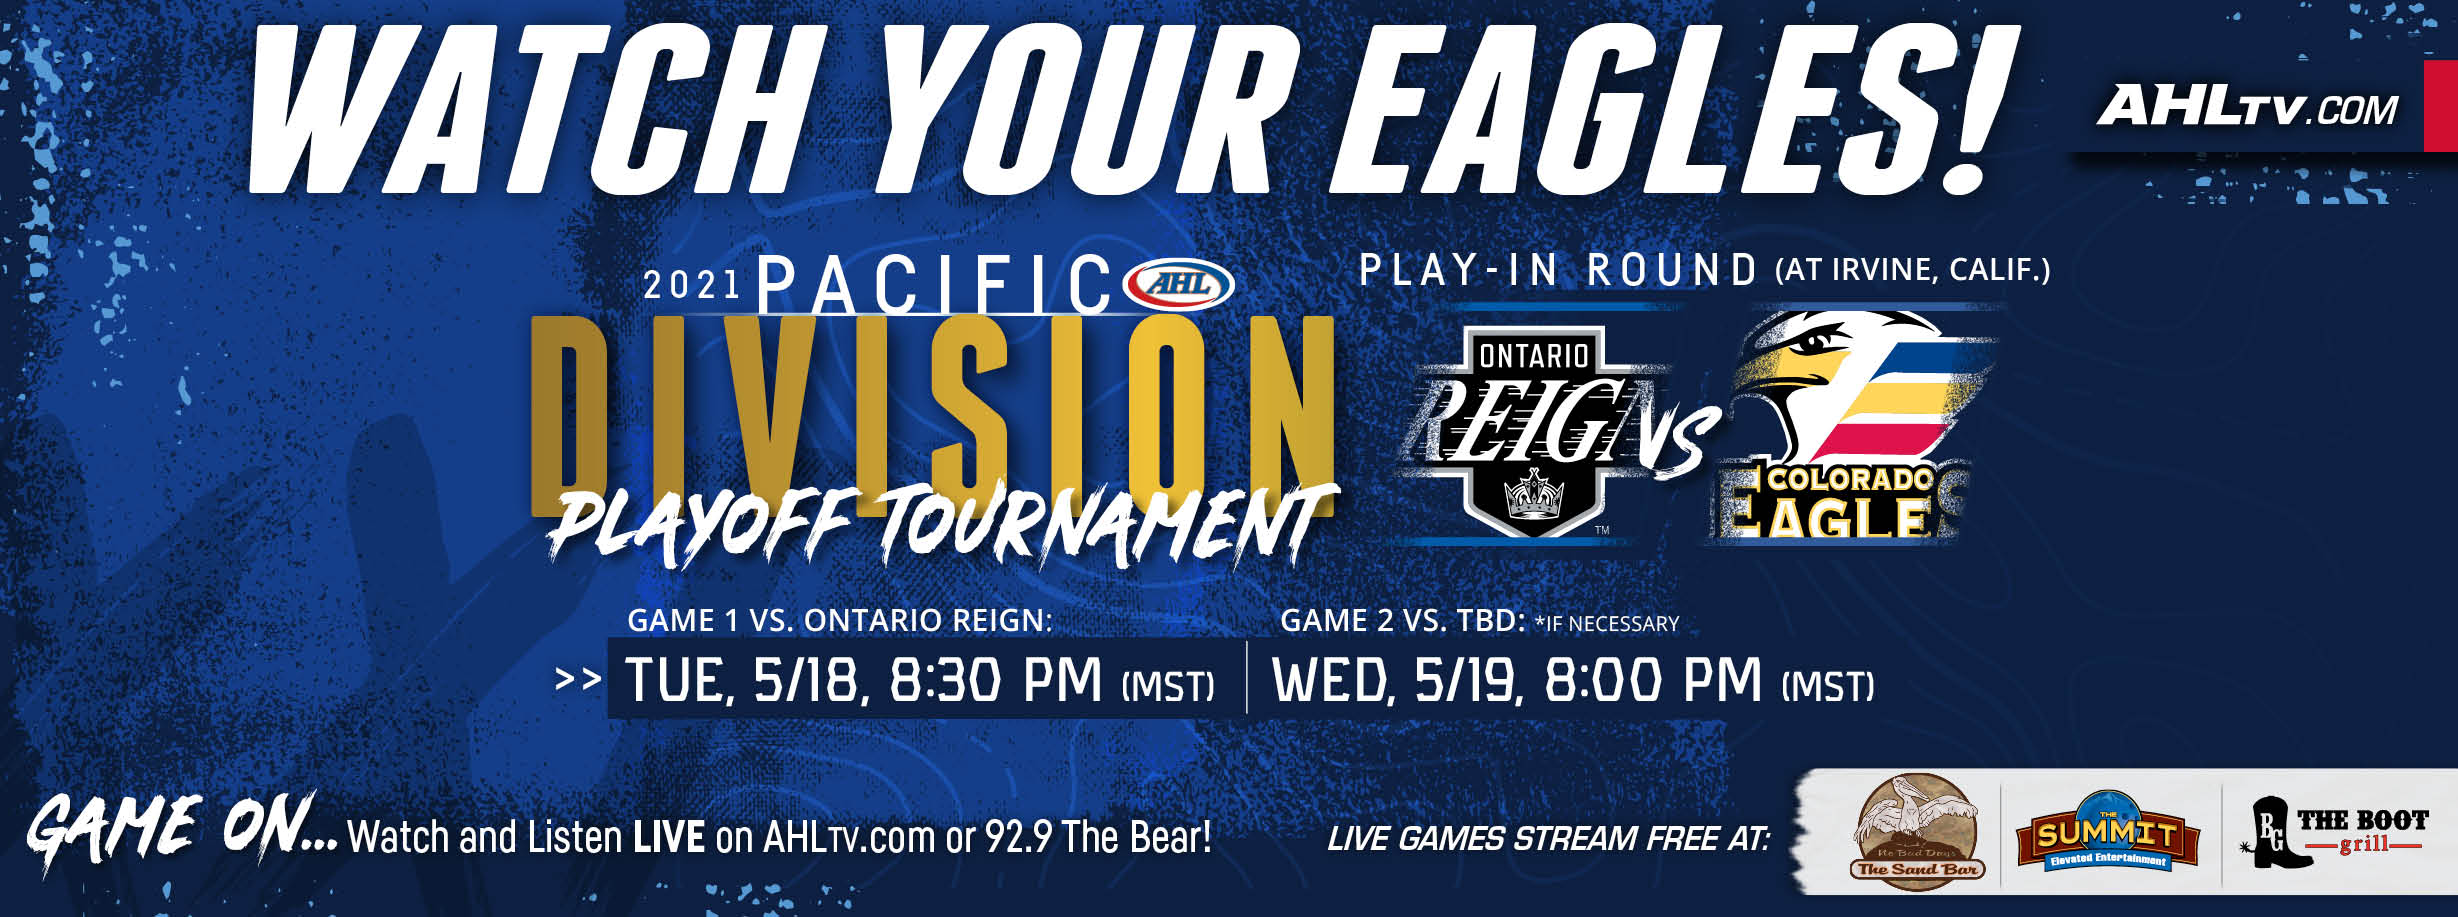 Watch the Eagles in the Pacific Division Tournament